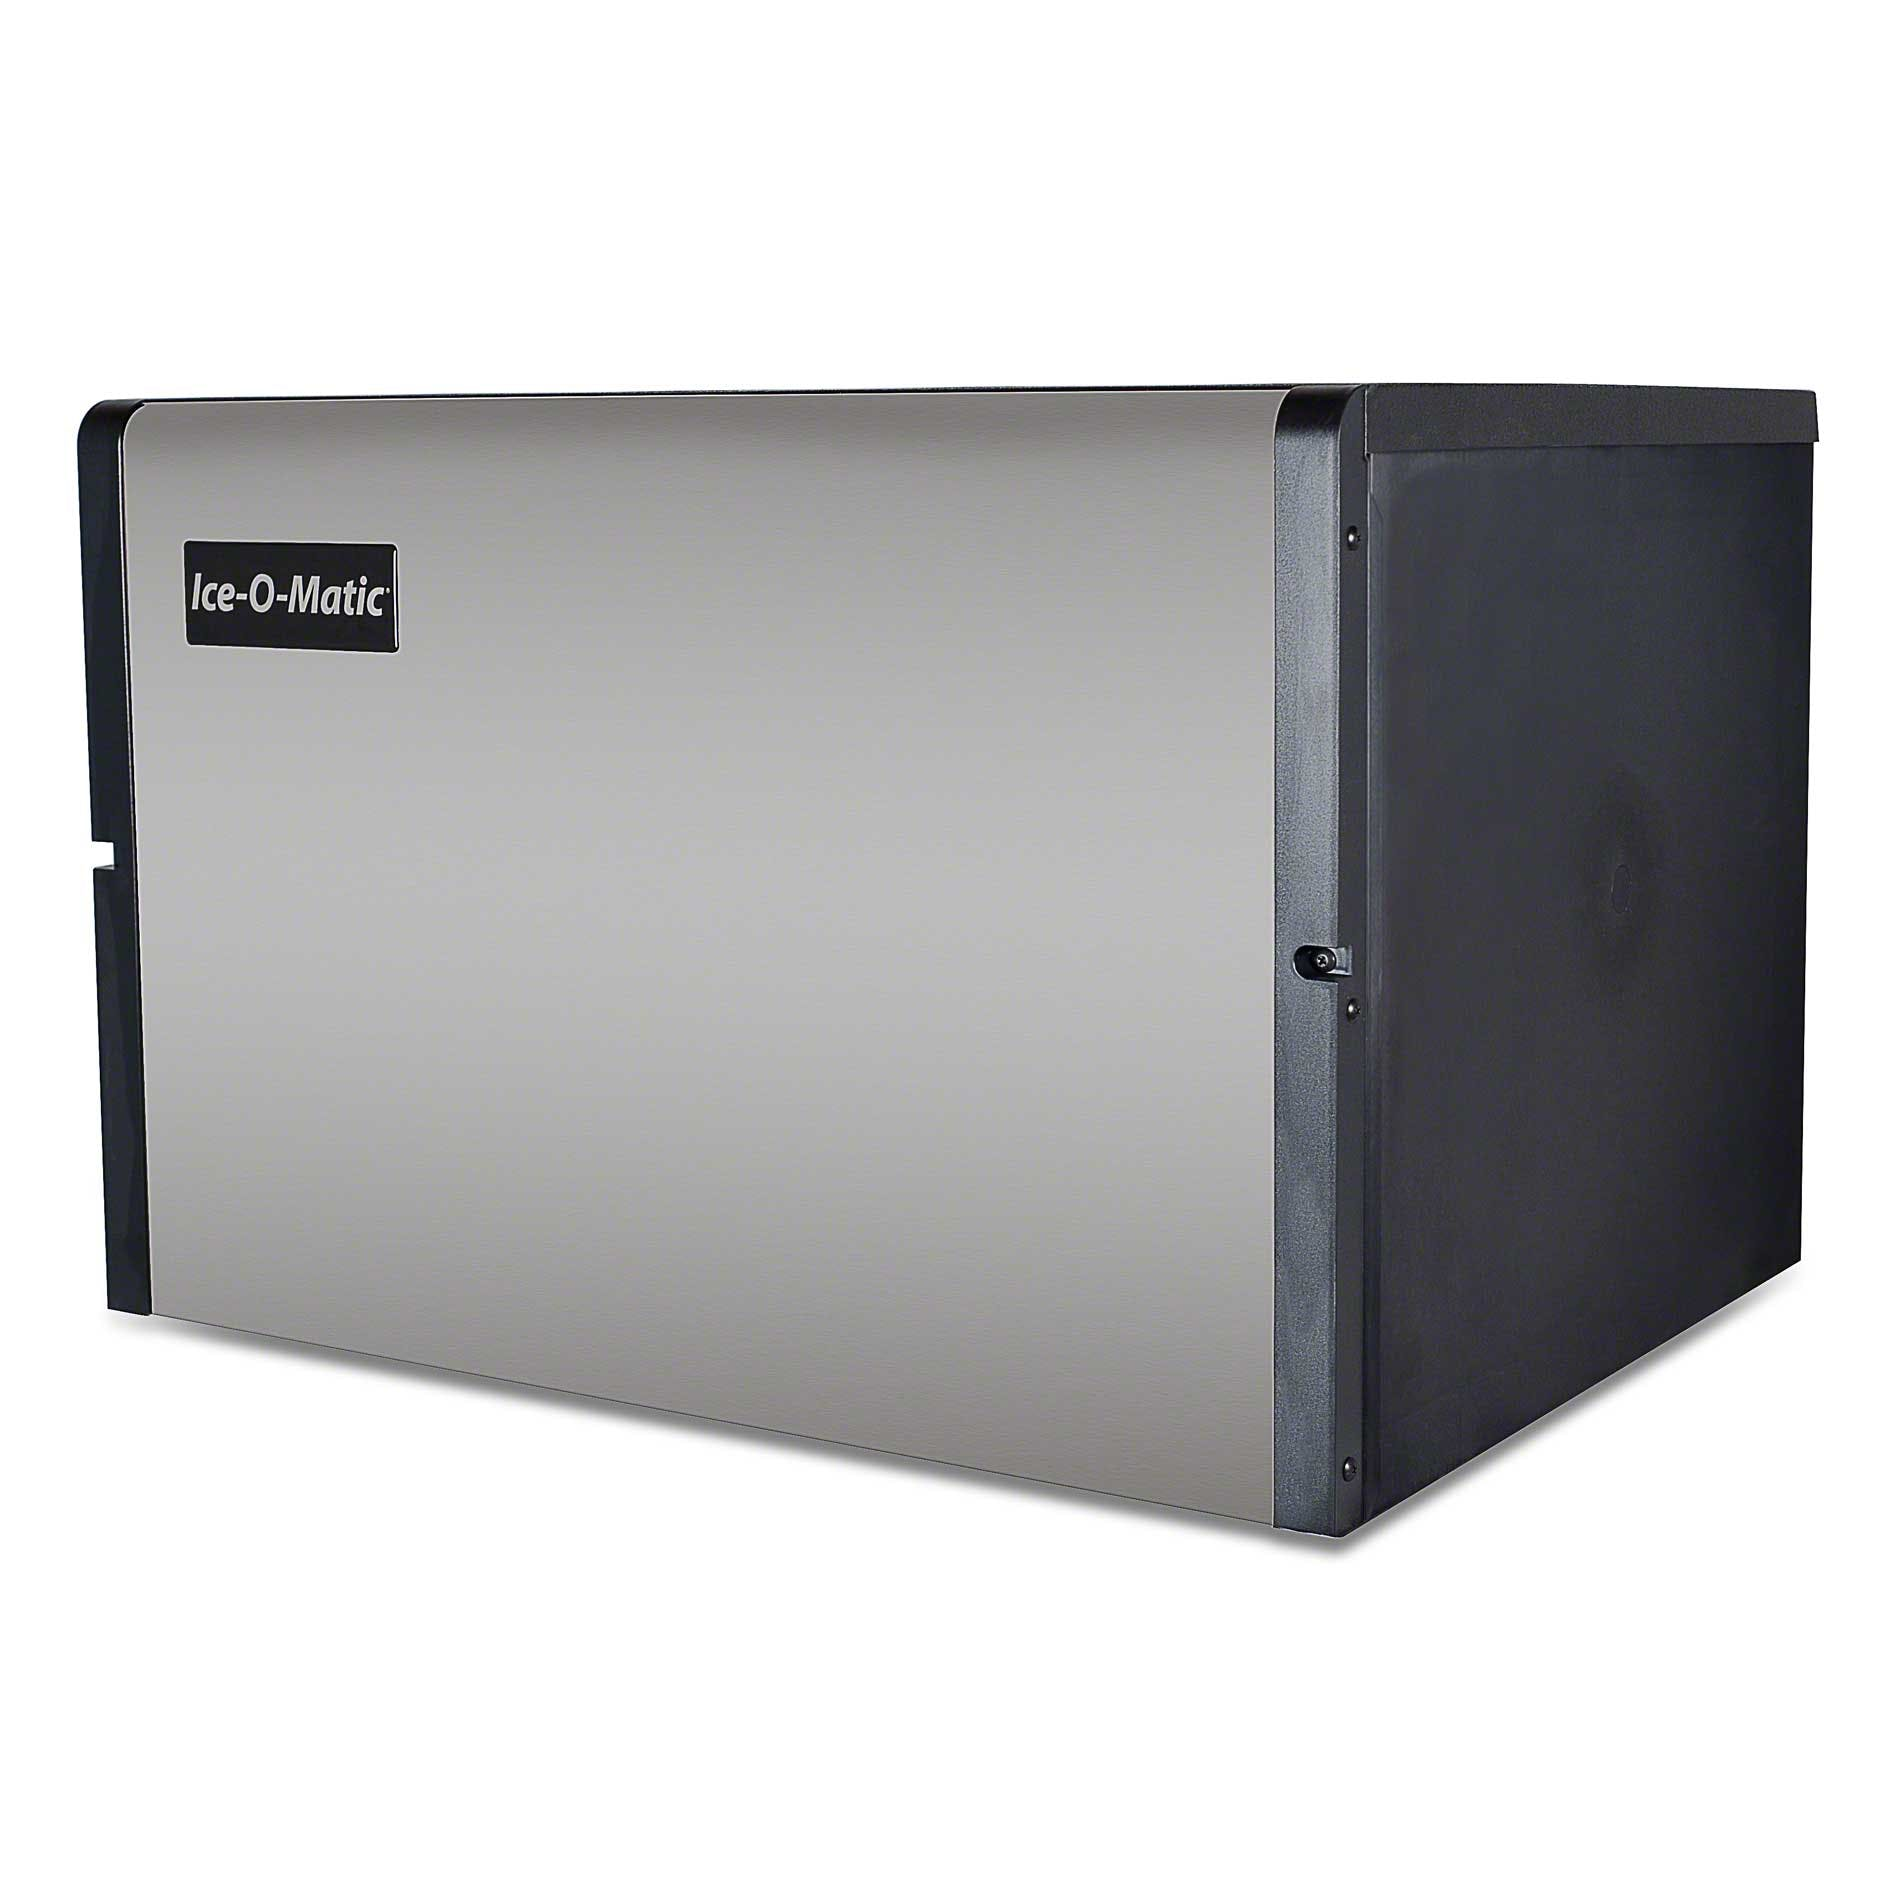 Ice-O-Matic - ICE0400FT 499 lb Full Cube Ice Machine - sold by Food Service Warehouse